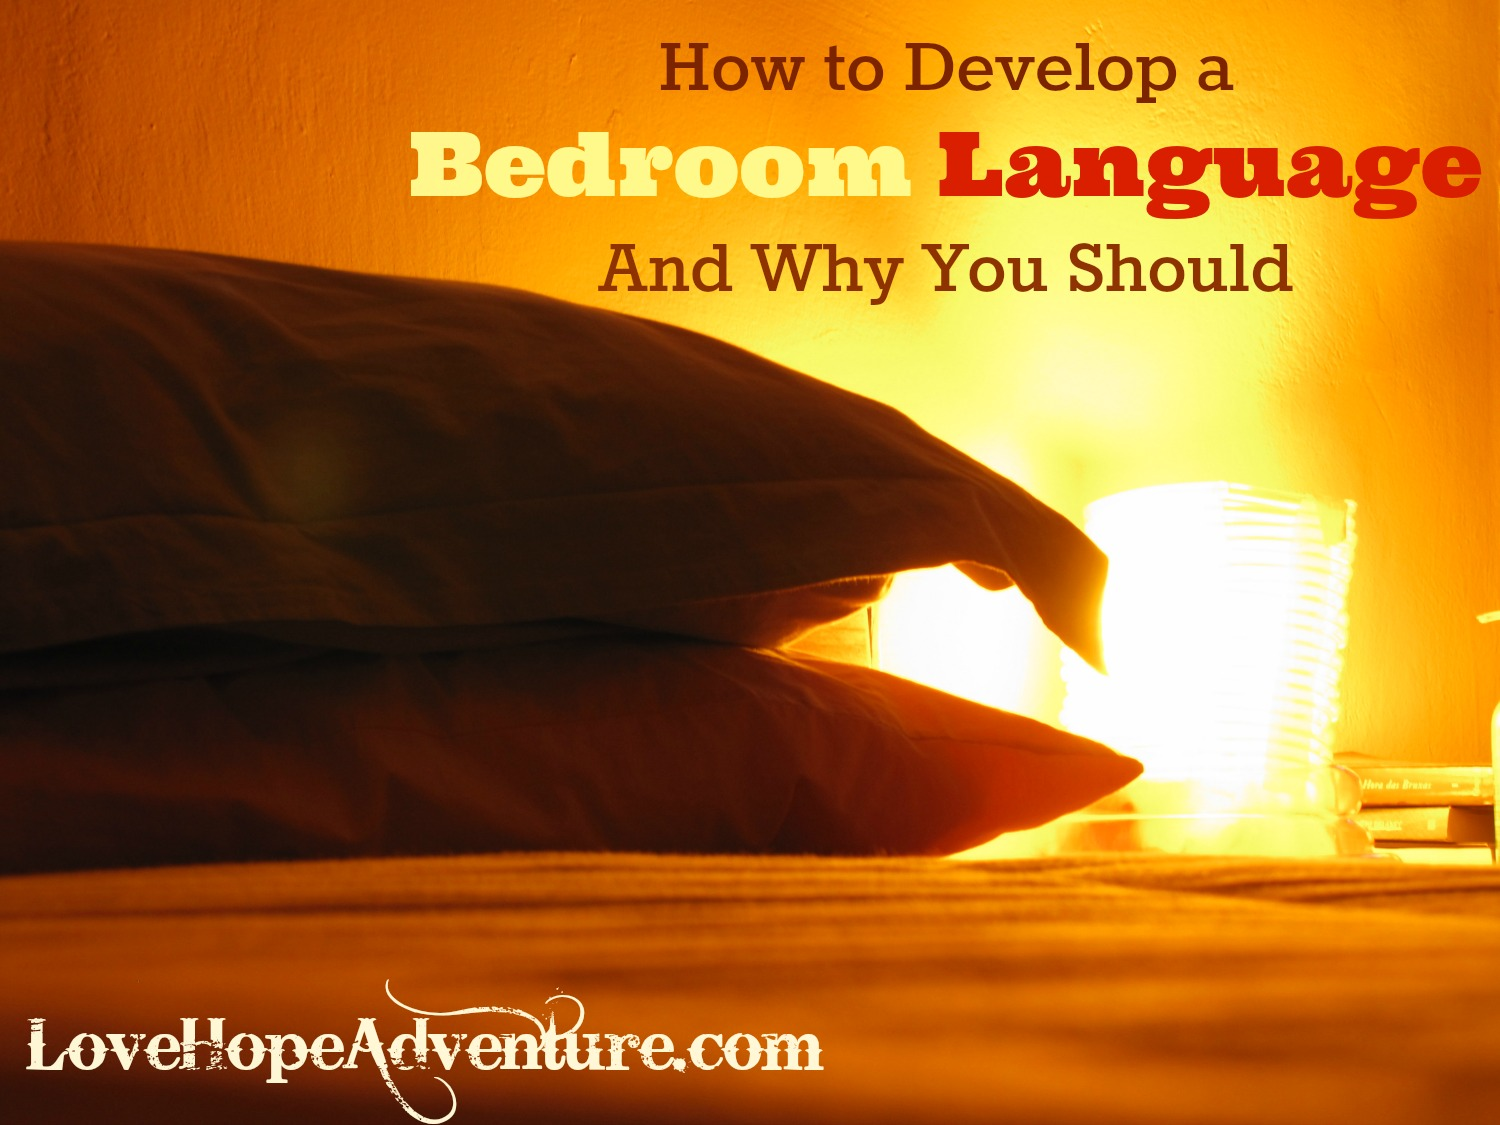 talk to you about developing a bedroom language and why it can be